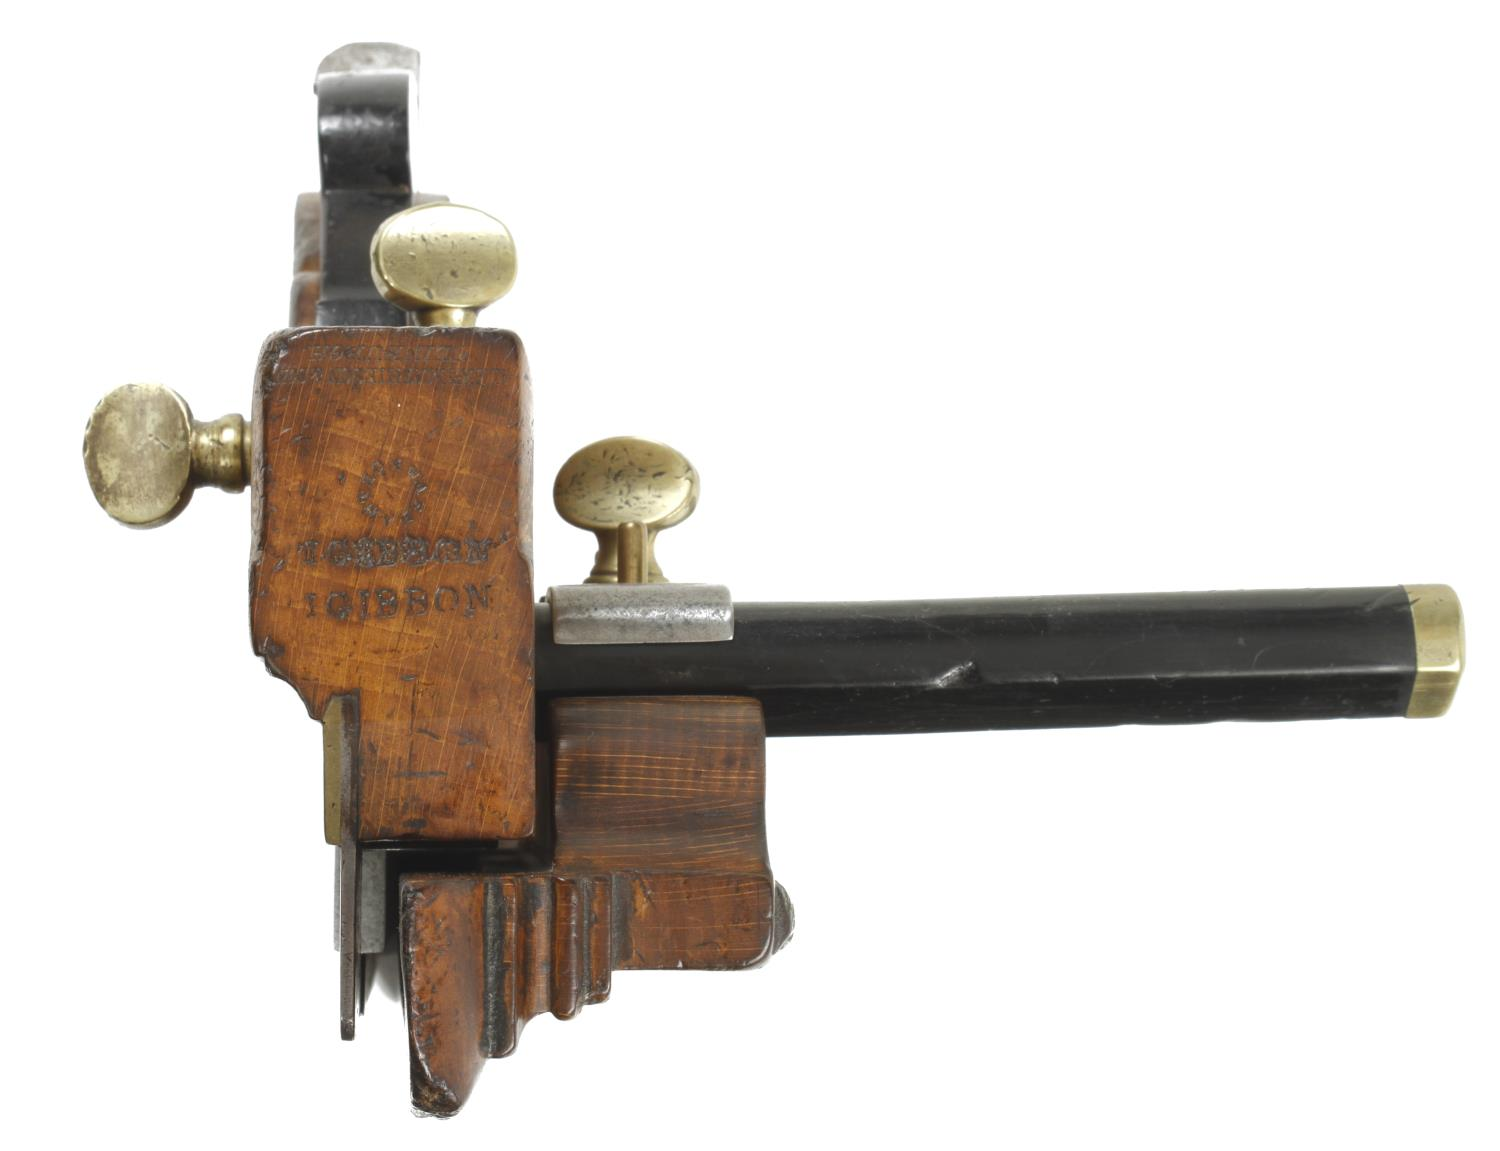 A MATHIESON No 11 handled bridle plough with ebony stems and probably replaced ebony wedge G+ - Image 2 of 3